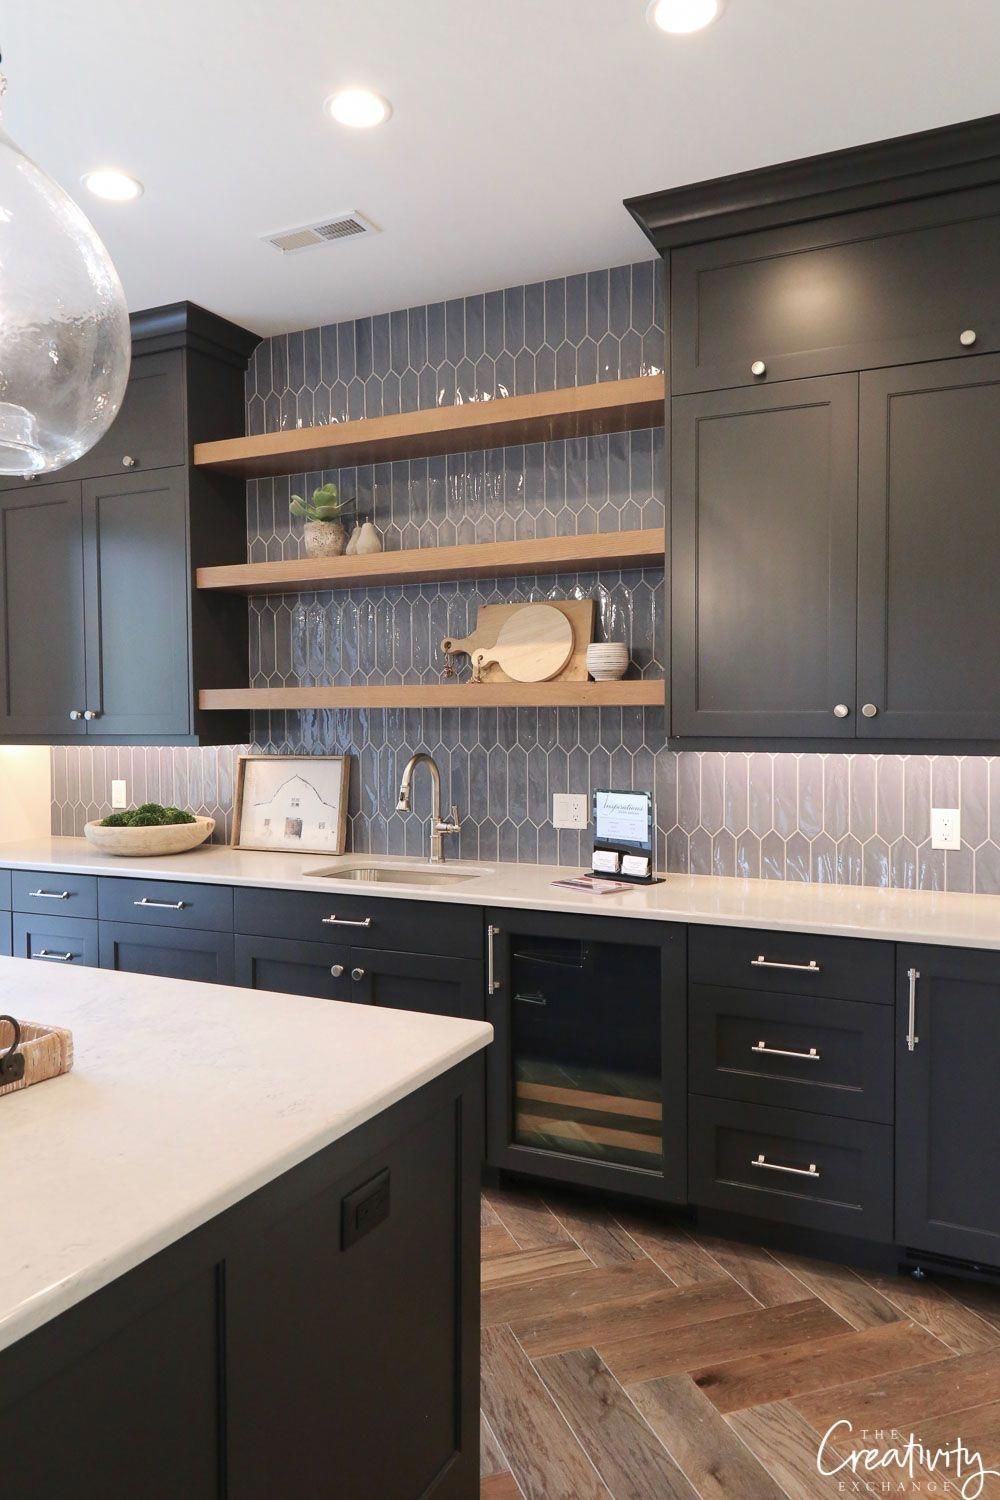 Benjamin Moore Hale Navy Cabinets And Open Shelves Combo Love The Tile Modernkitchen Interior Design Kitchen Kitchen Design Modern Kitchen